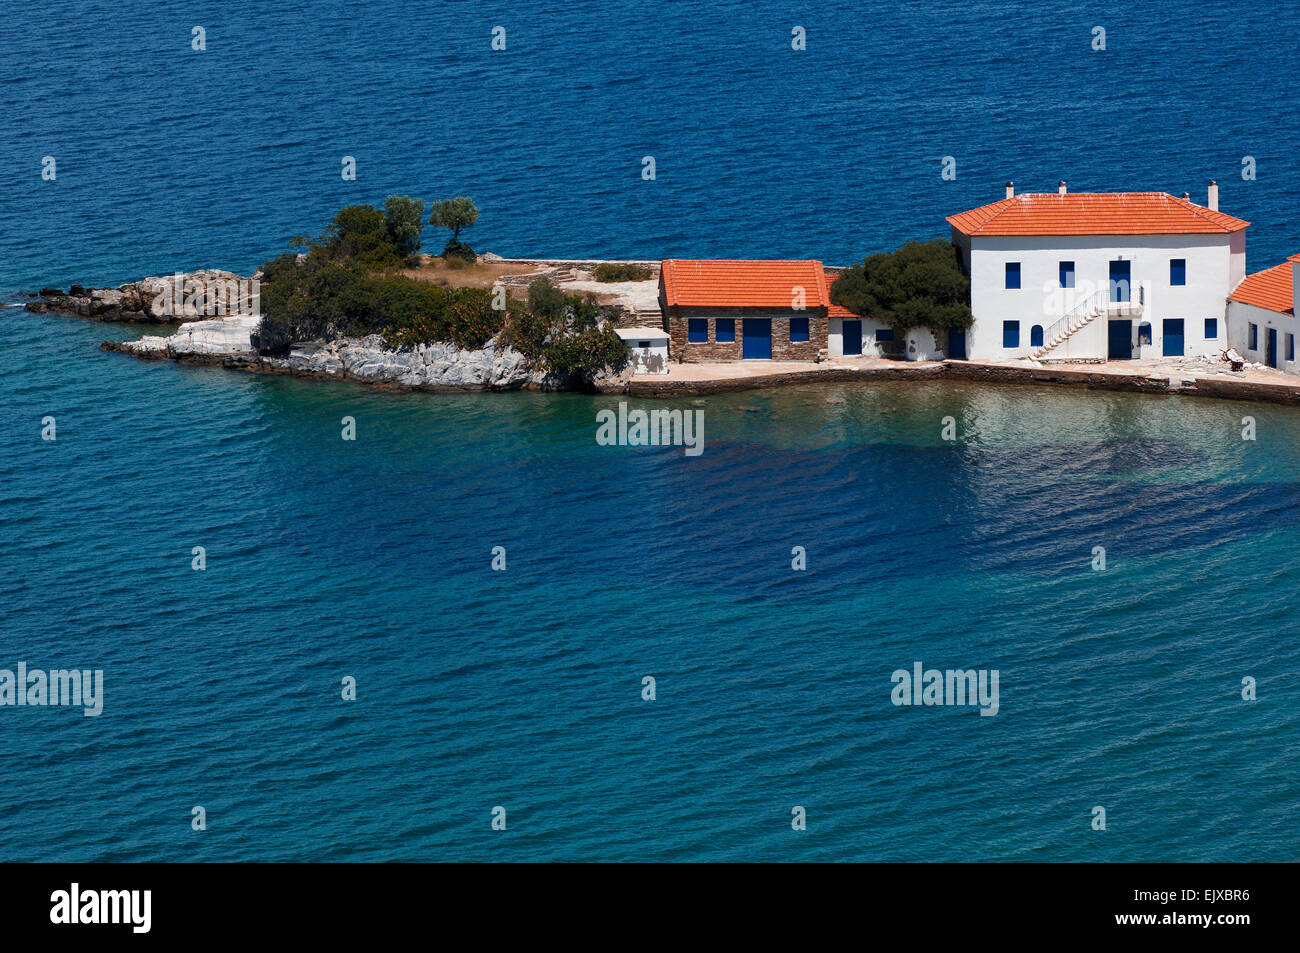 Promontory with residential house in the Pagasitic Gulf on Pelion Peninsula, Thessaly, Greece - Stock Image